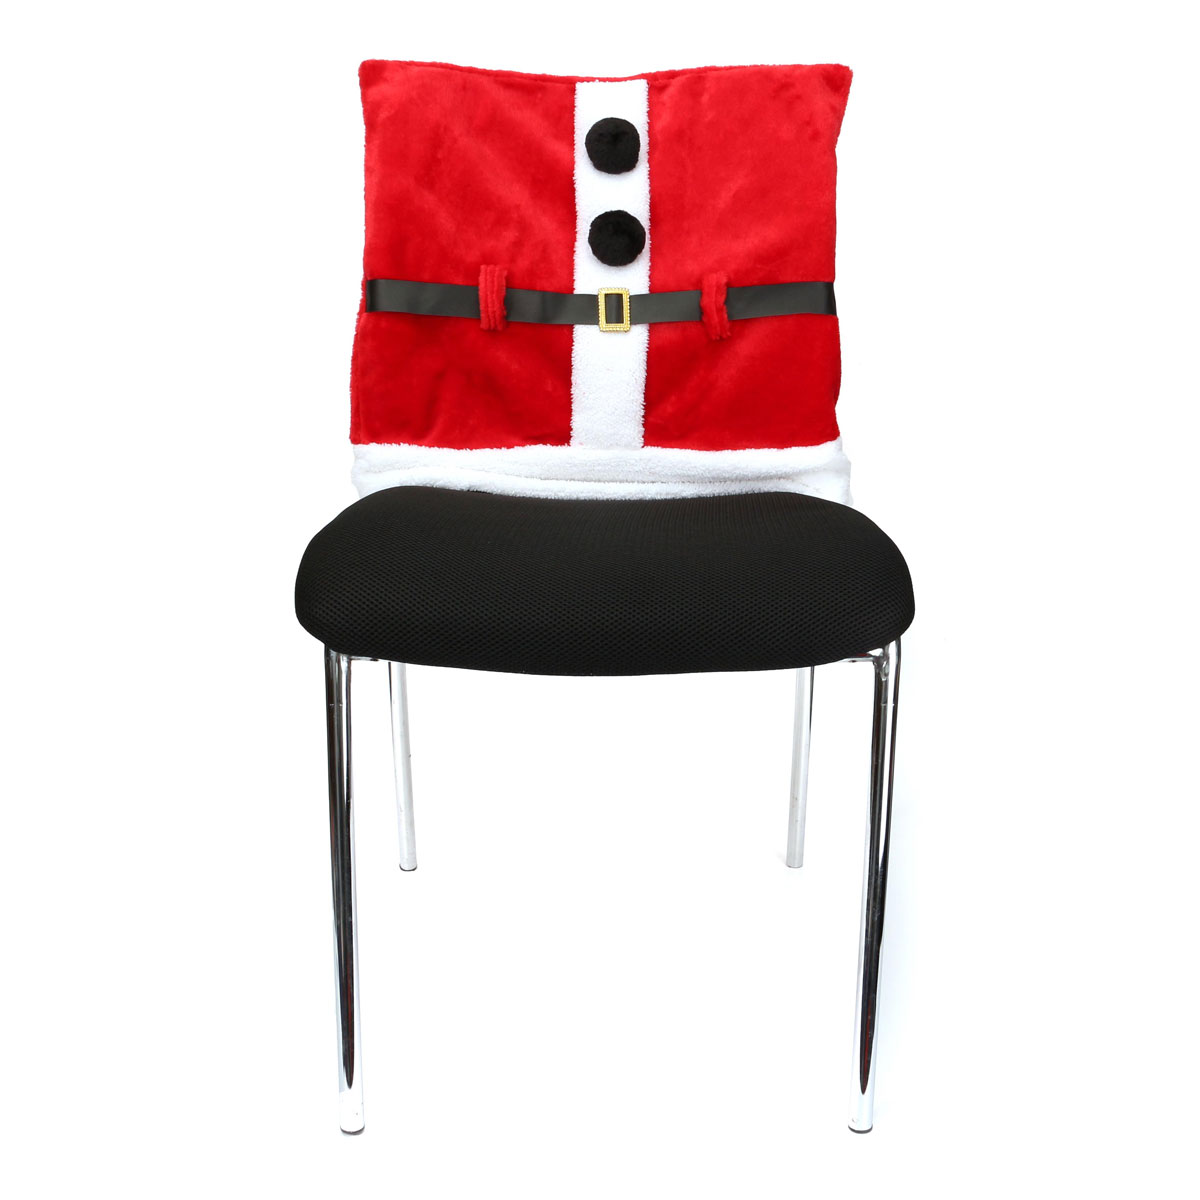 kirklands christmas chair covers invisible trick kit cover santa claus dinner decoration